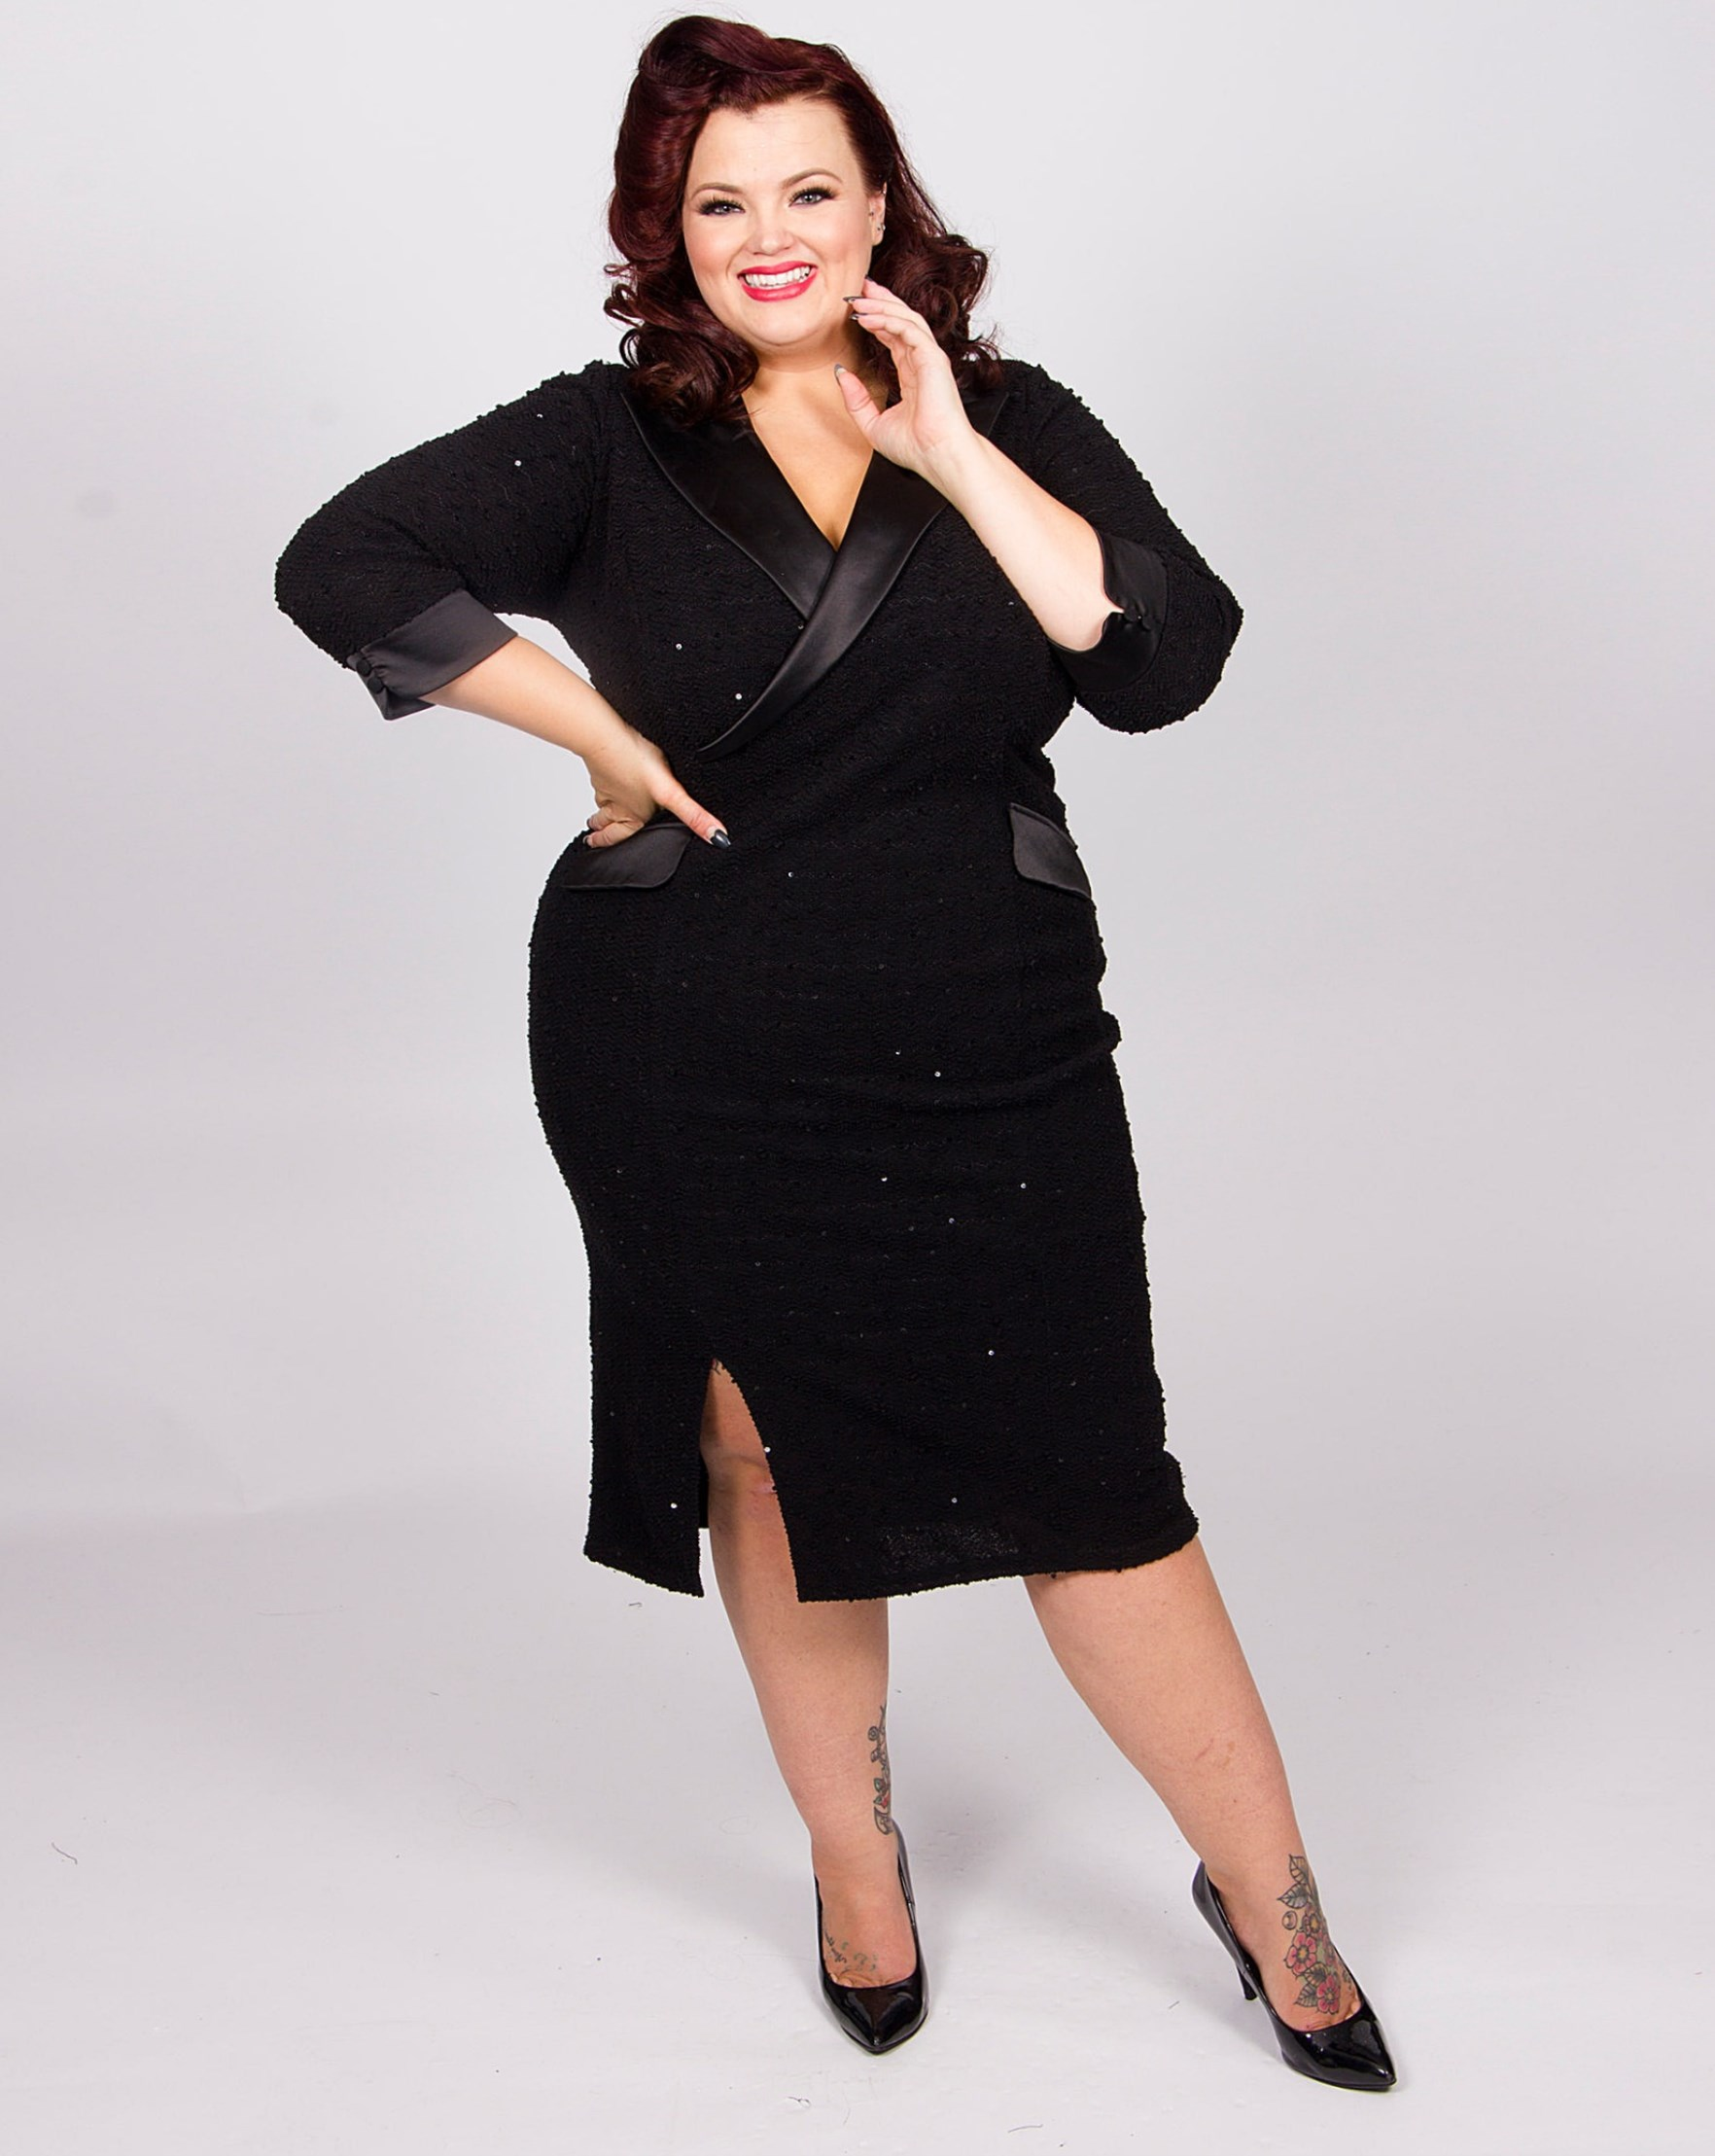 ad68b3af22 This sparkly tuxedo dress will make you smile with its shine and smooth  collars. It's great for a plus size woman who isn't afraid to shine at a  party, ...